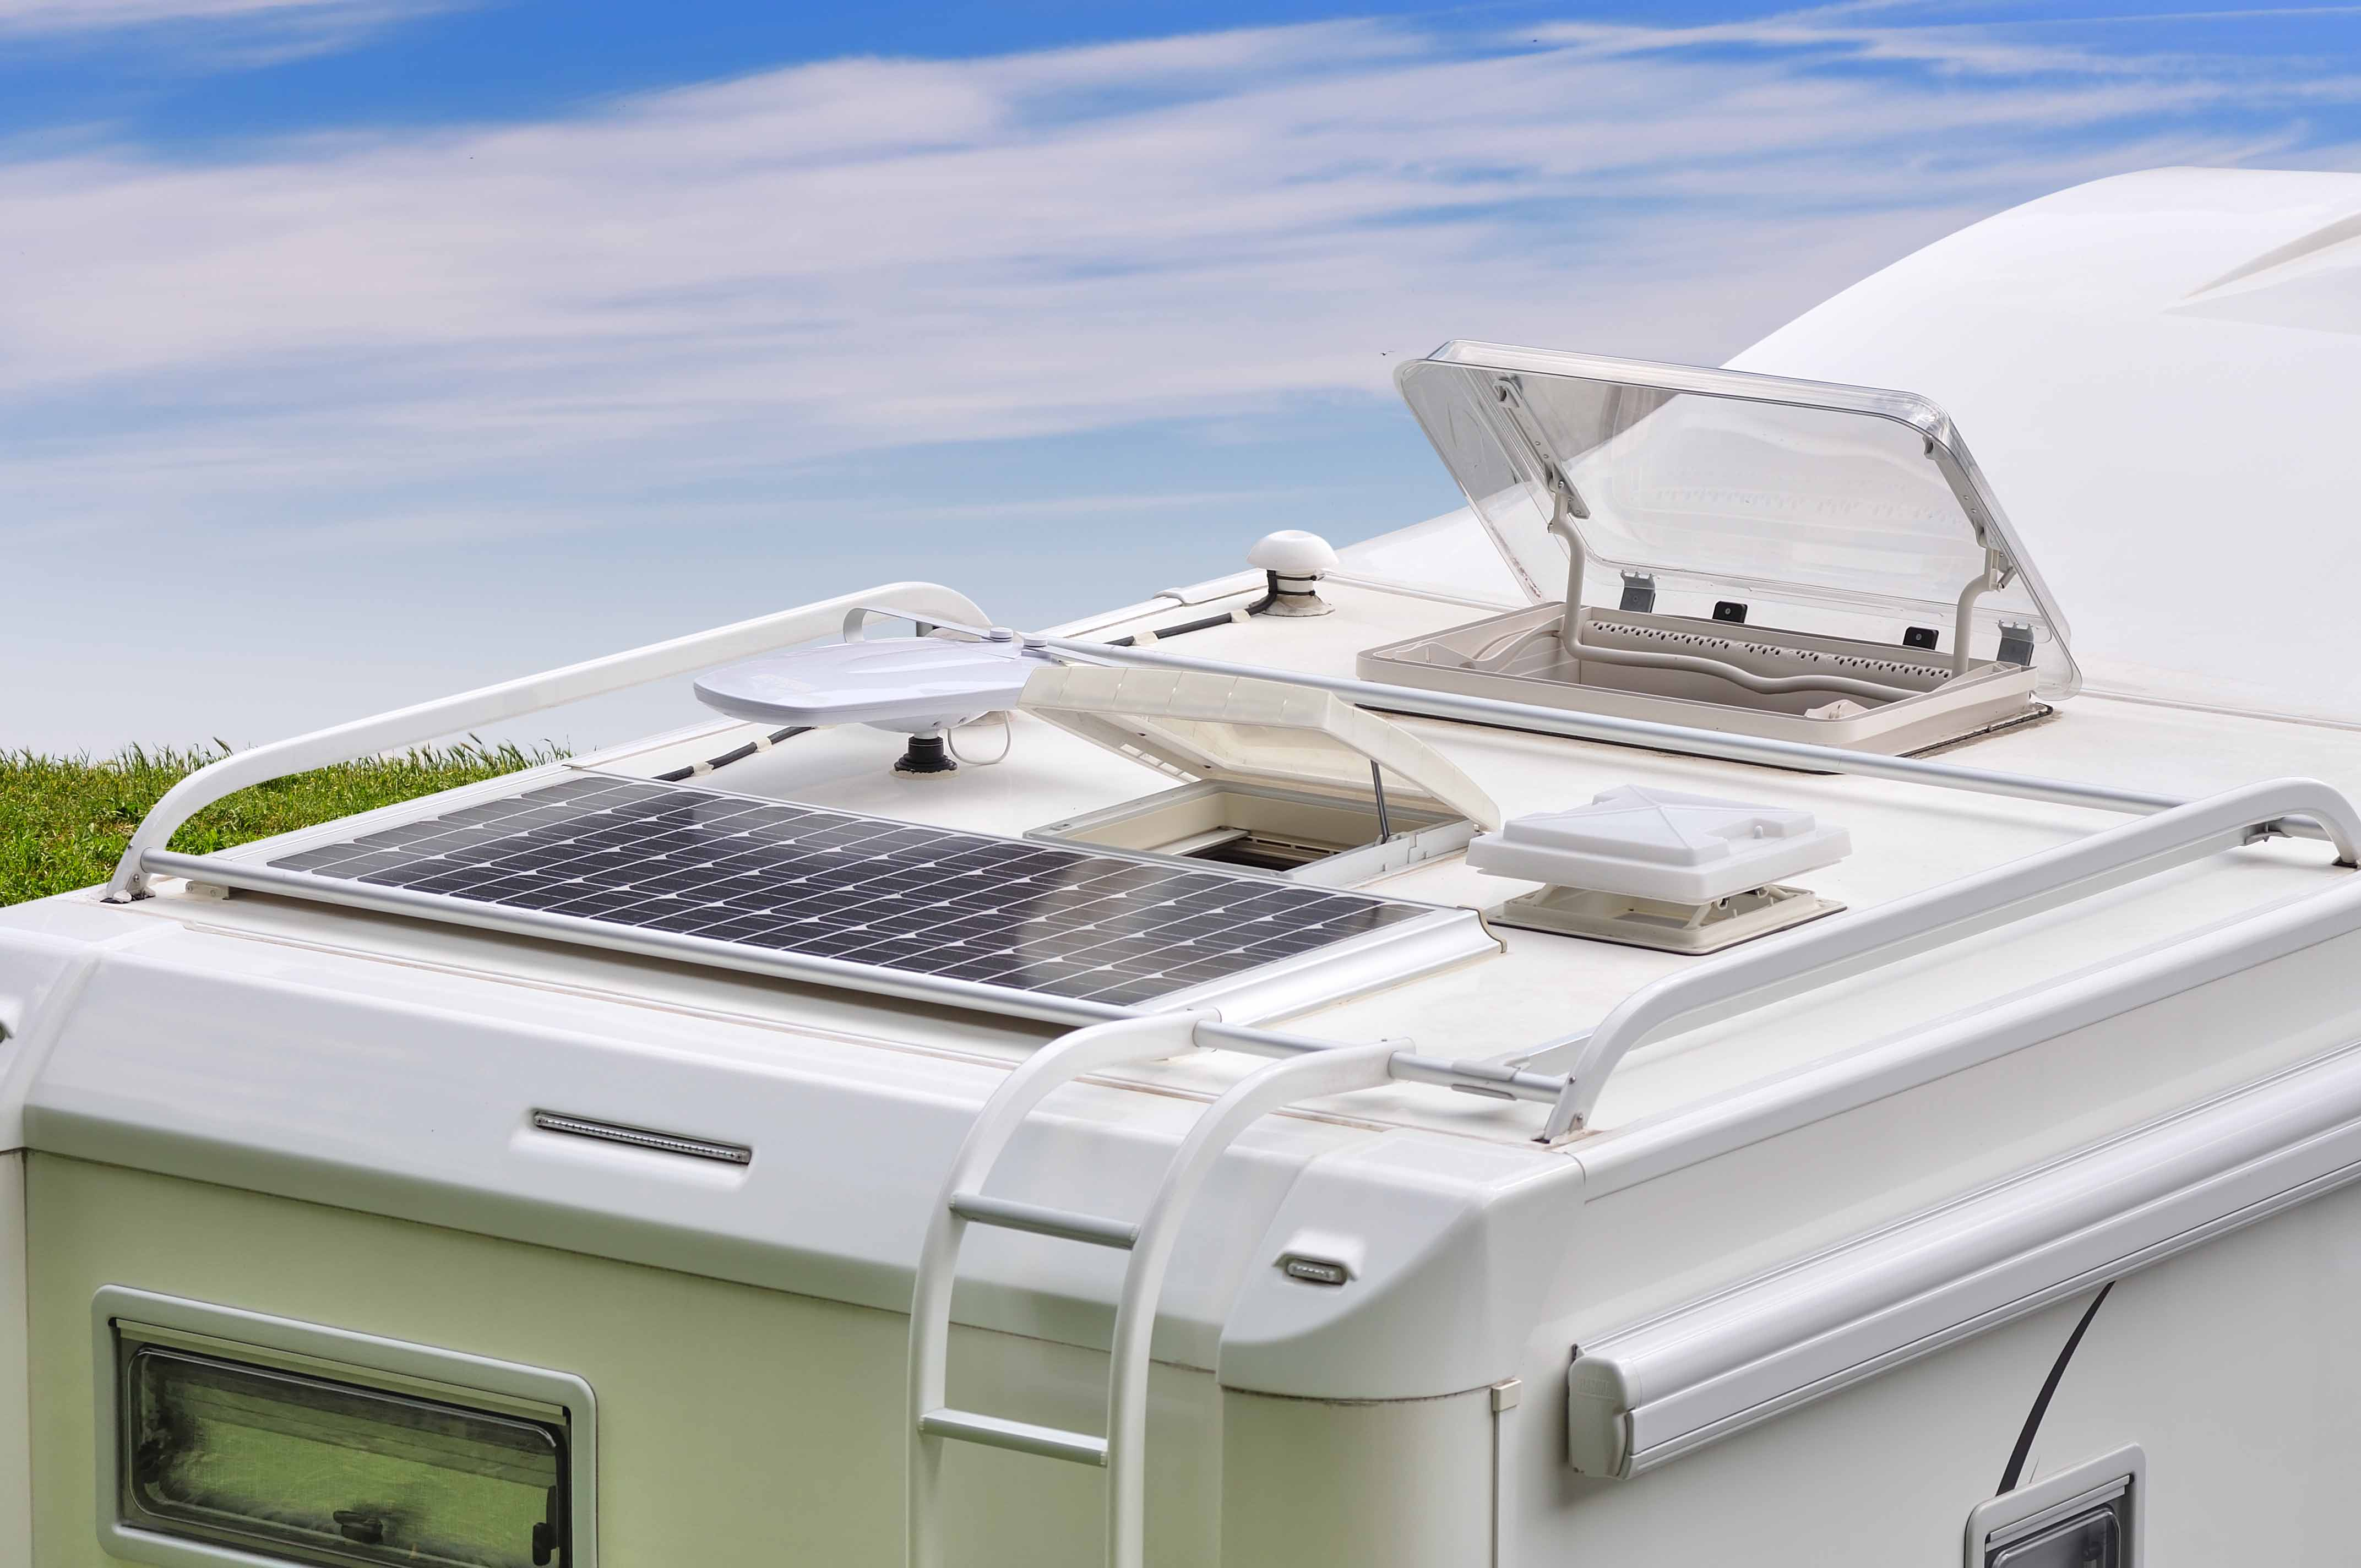 Sunworks Solar Panels And Kits For Motorhomes Boats And